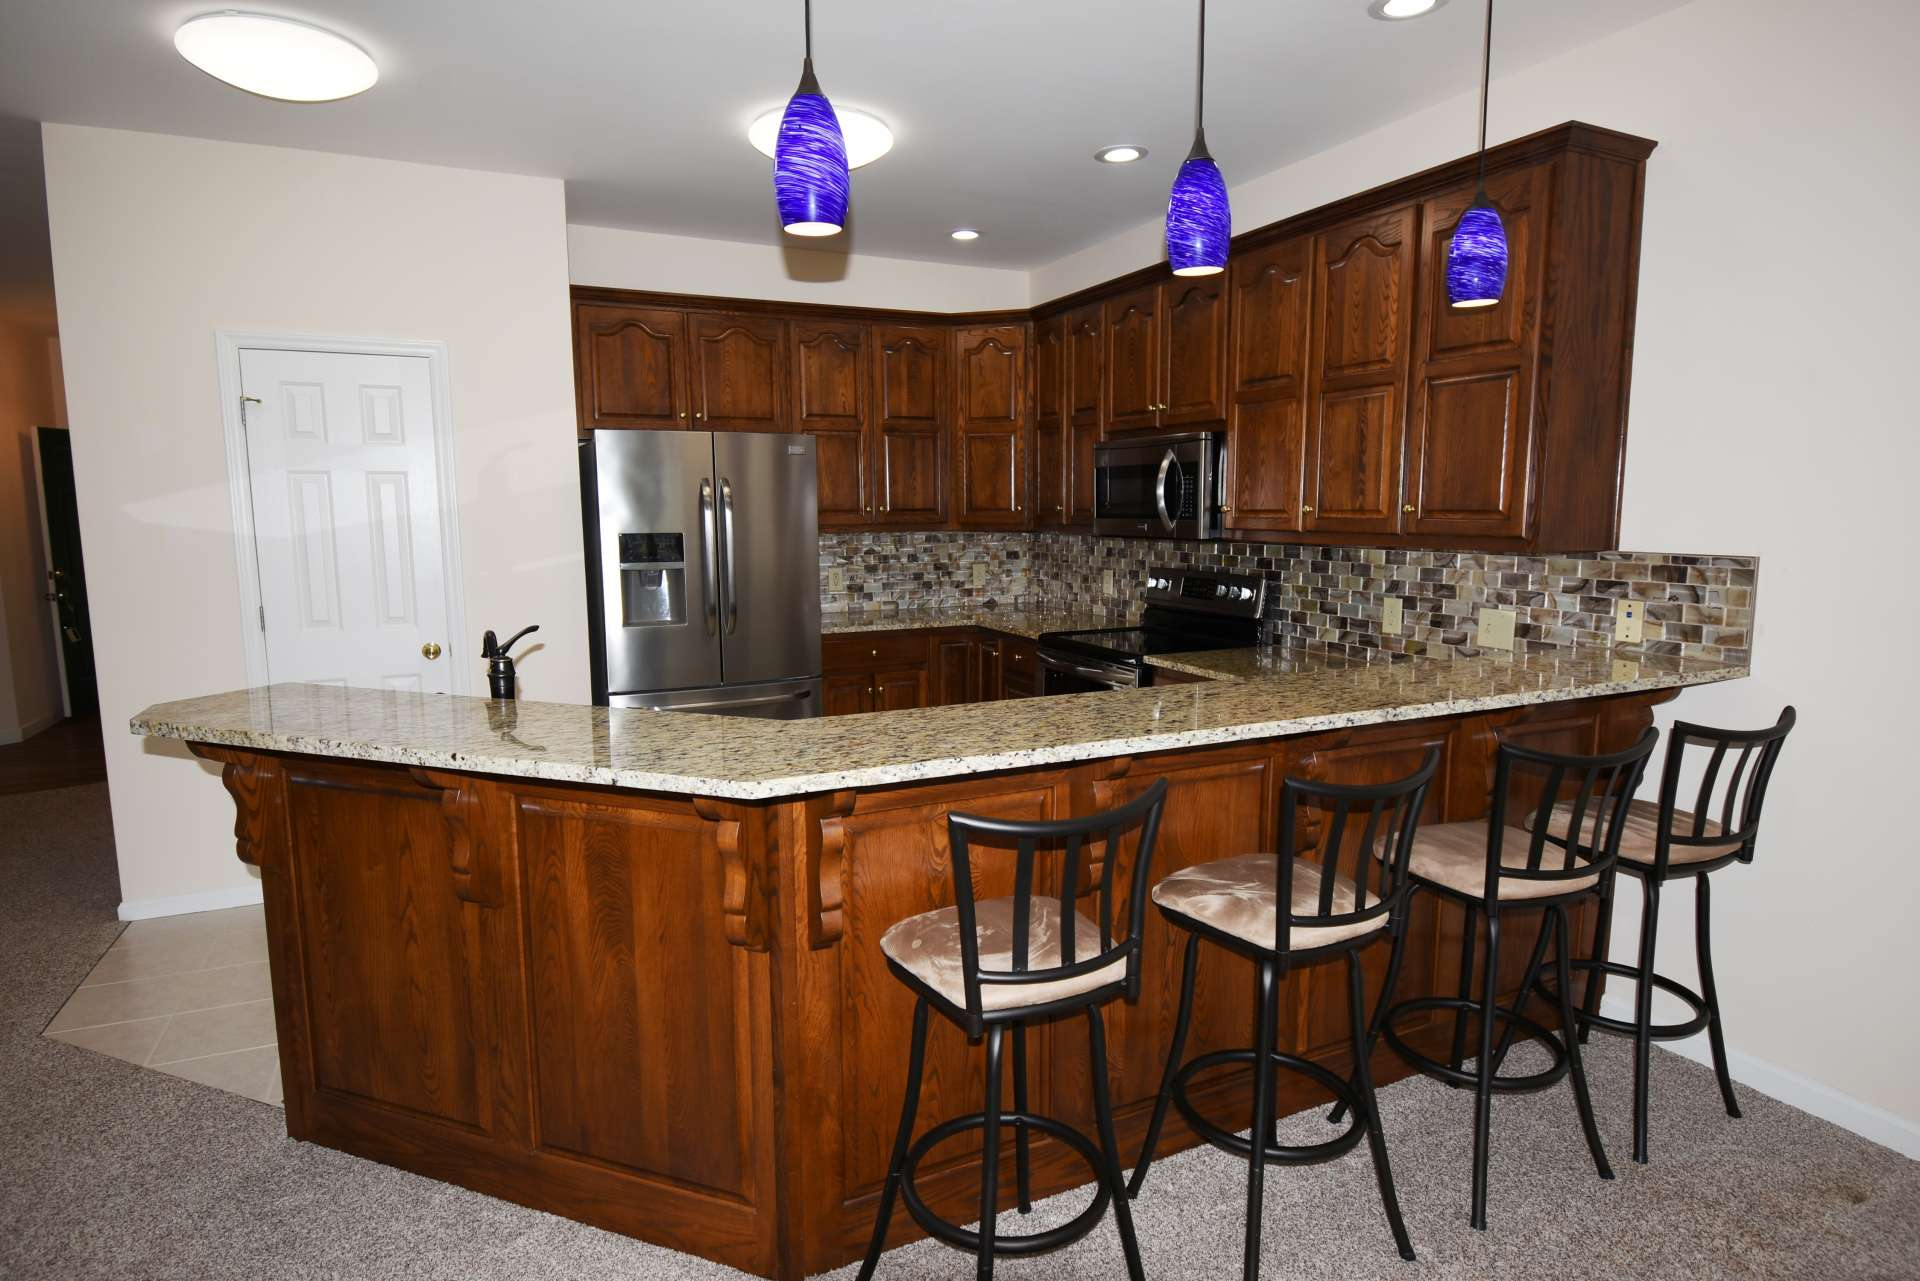 The well appointed and efficient kitchen offers stainless appliances, granite counter tops, and plenty of work and storage space including a pantry and a bar with seating.